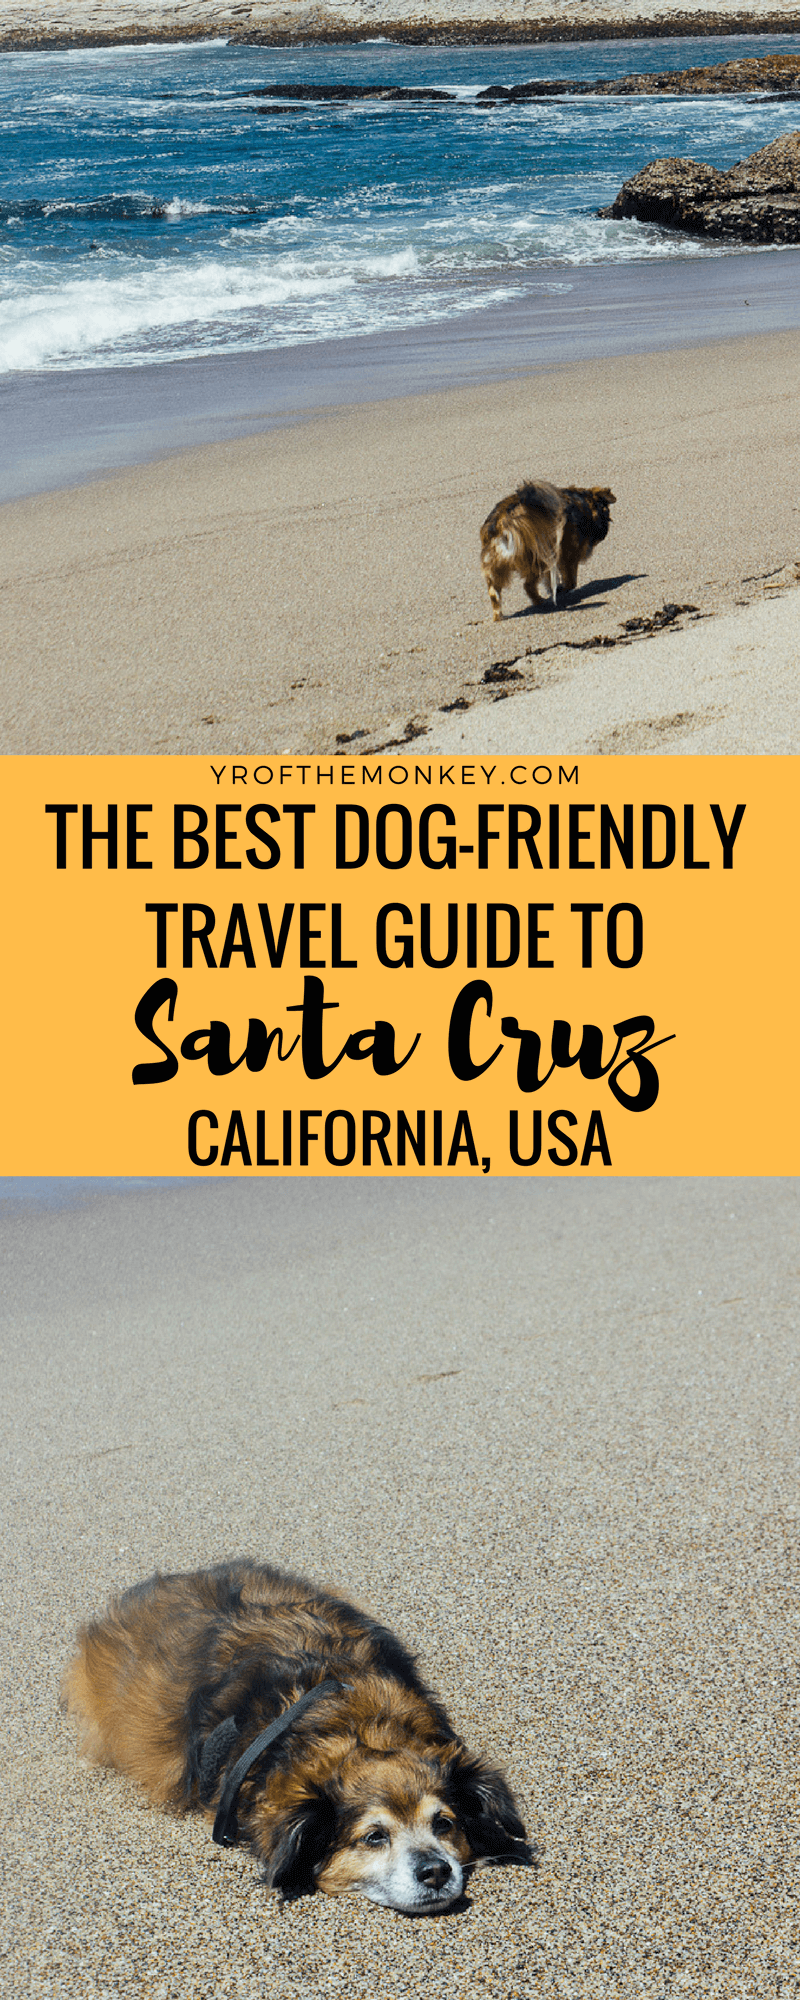 This is the best dog friendly travel guide to Santa Cruz, California USA. Filled with many dog friendly activities such as beach time and Redwoods plus dog friendly restaurant recommendations, this is the perfect pet friendly travel guide. Travel with dogs. Dog Friendly travel. Visit California. California travel. Santa Cruz beyond the boardwalk.